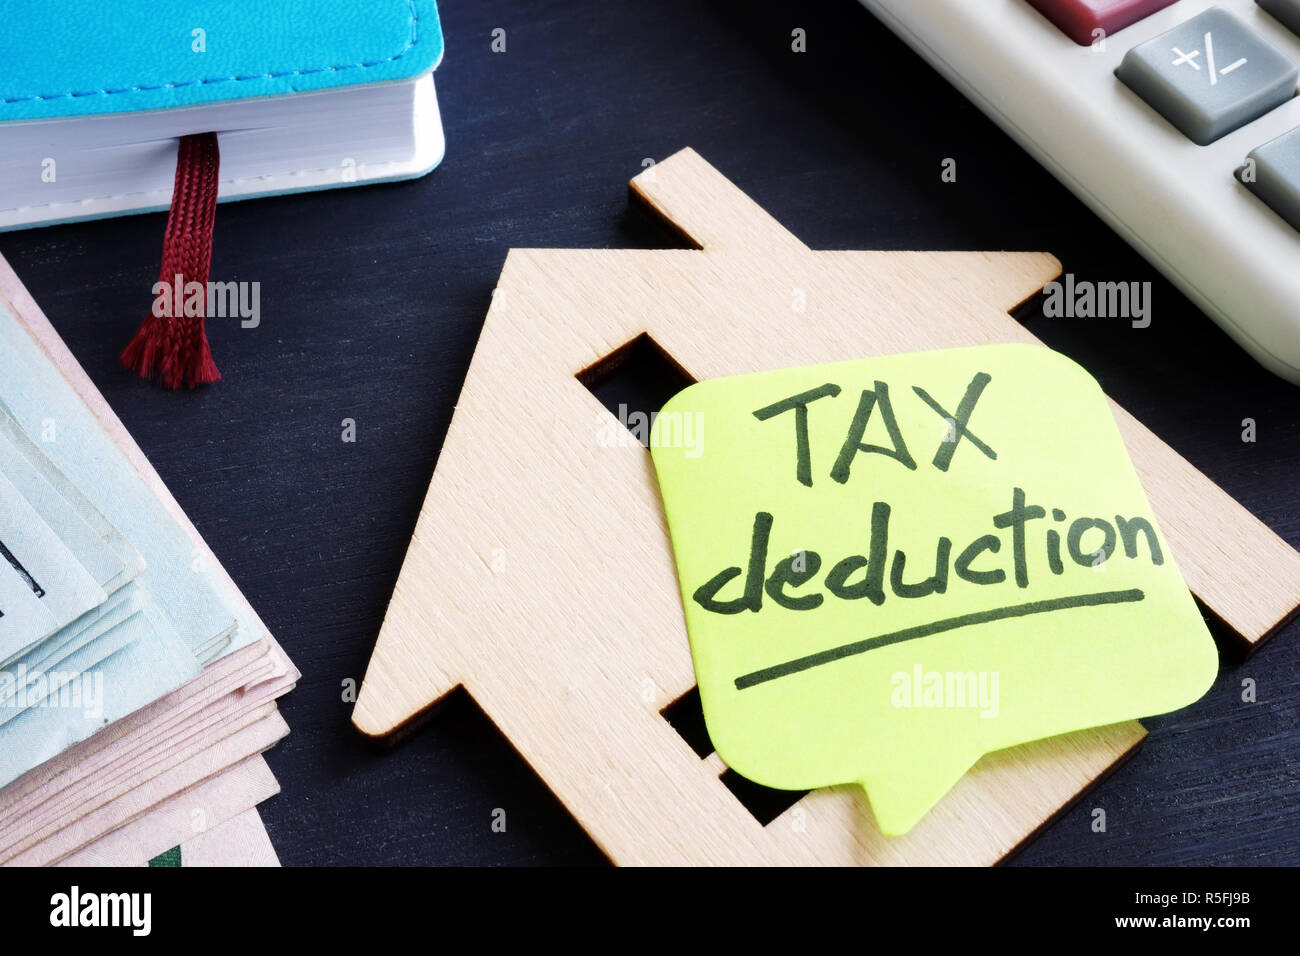 Property tax deduction. Model of house and calculator. - Stock Image